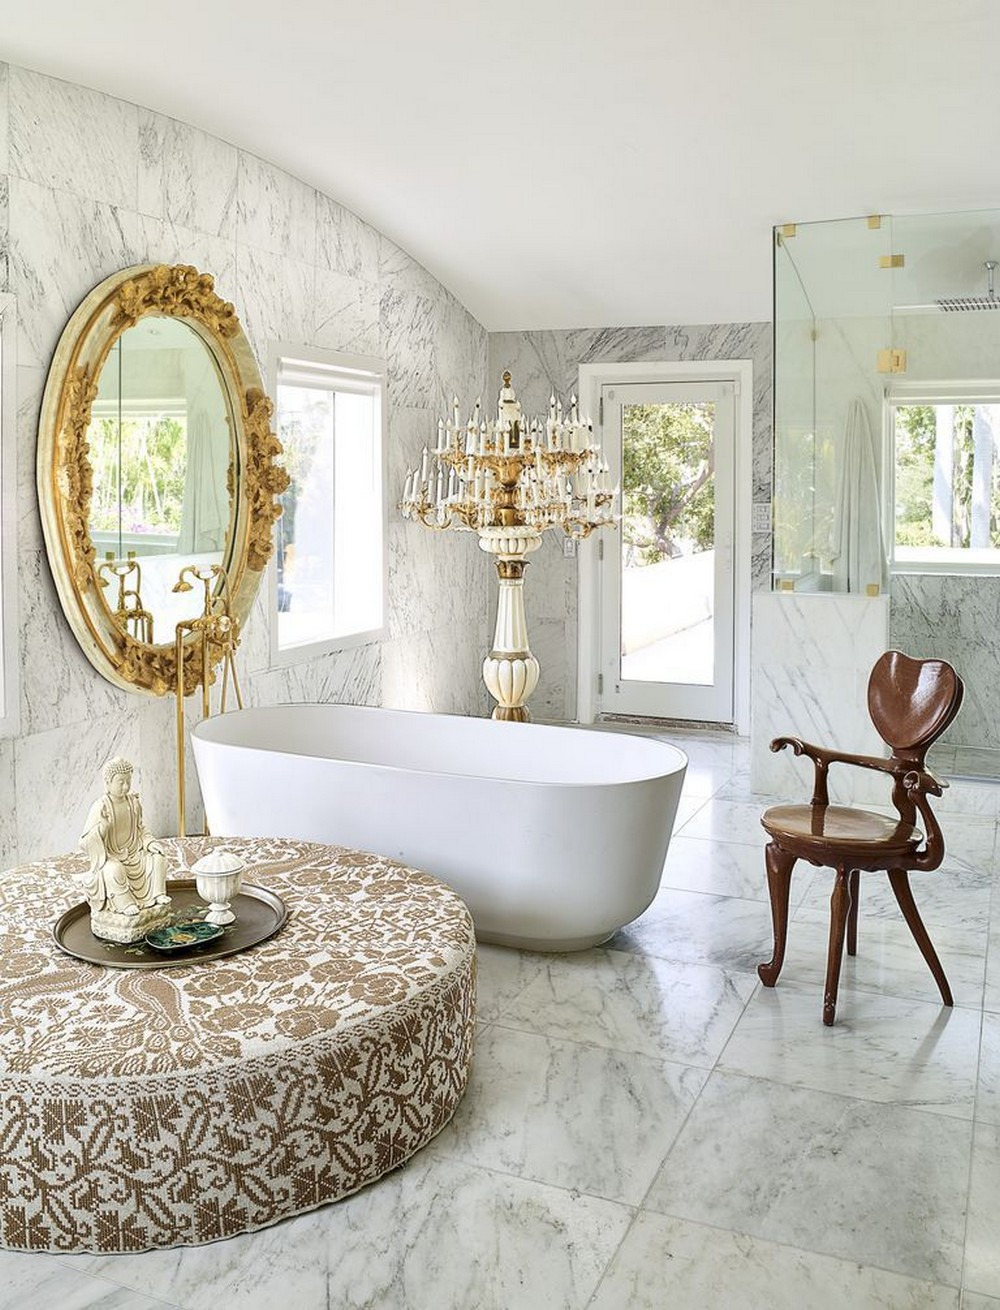 Elle Decors Hot List For The Ultimate Luxury Bathroom